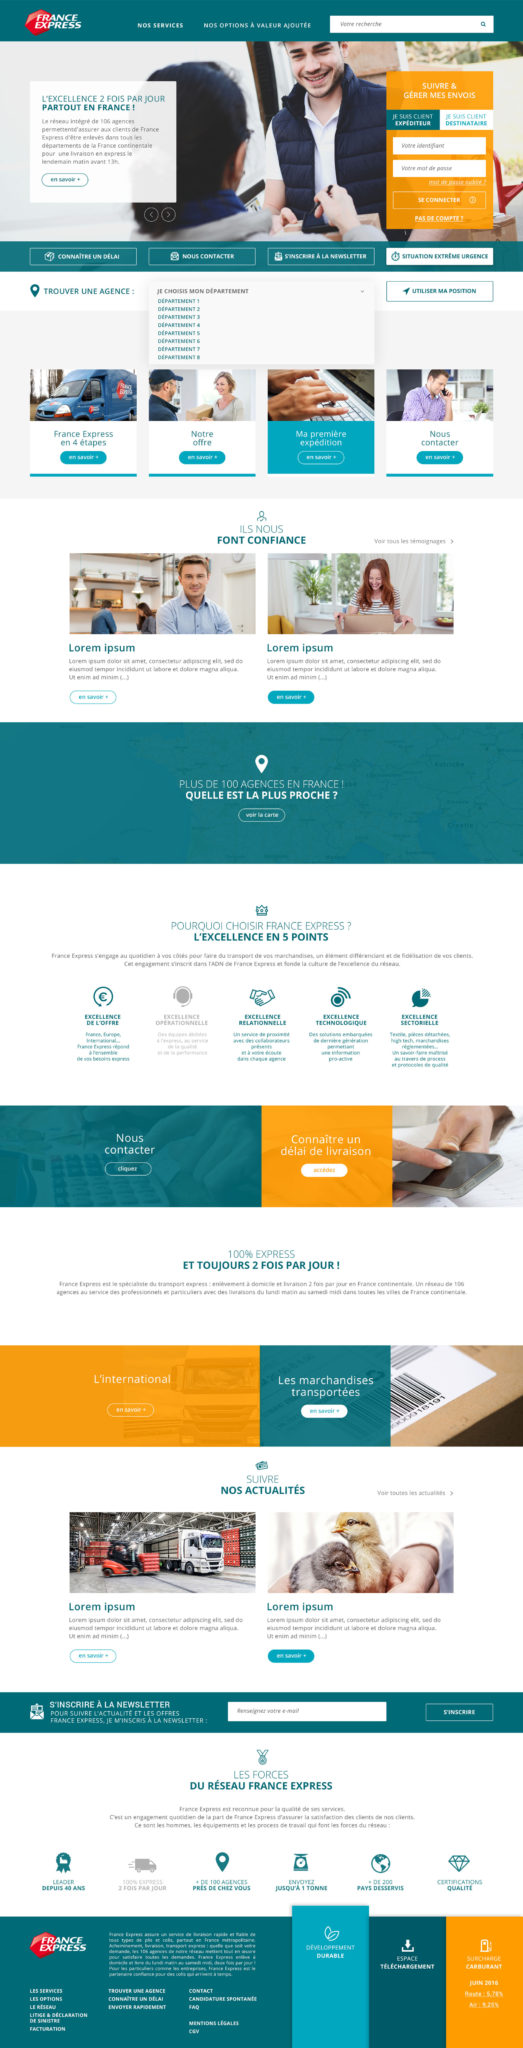 France express maquette home page responsive